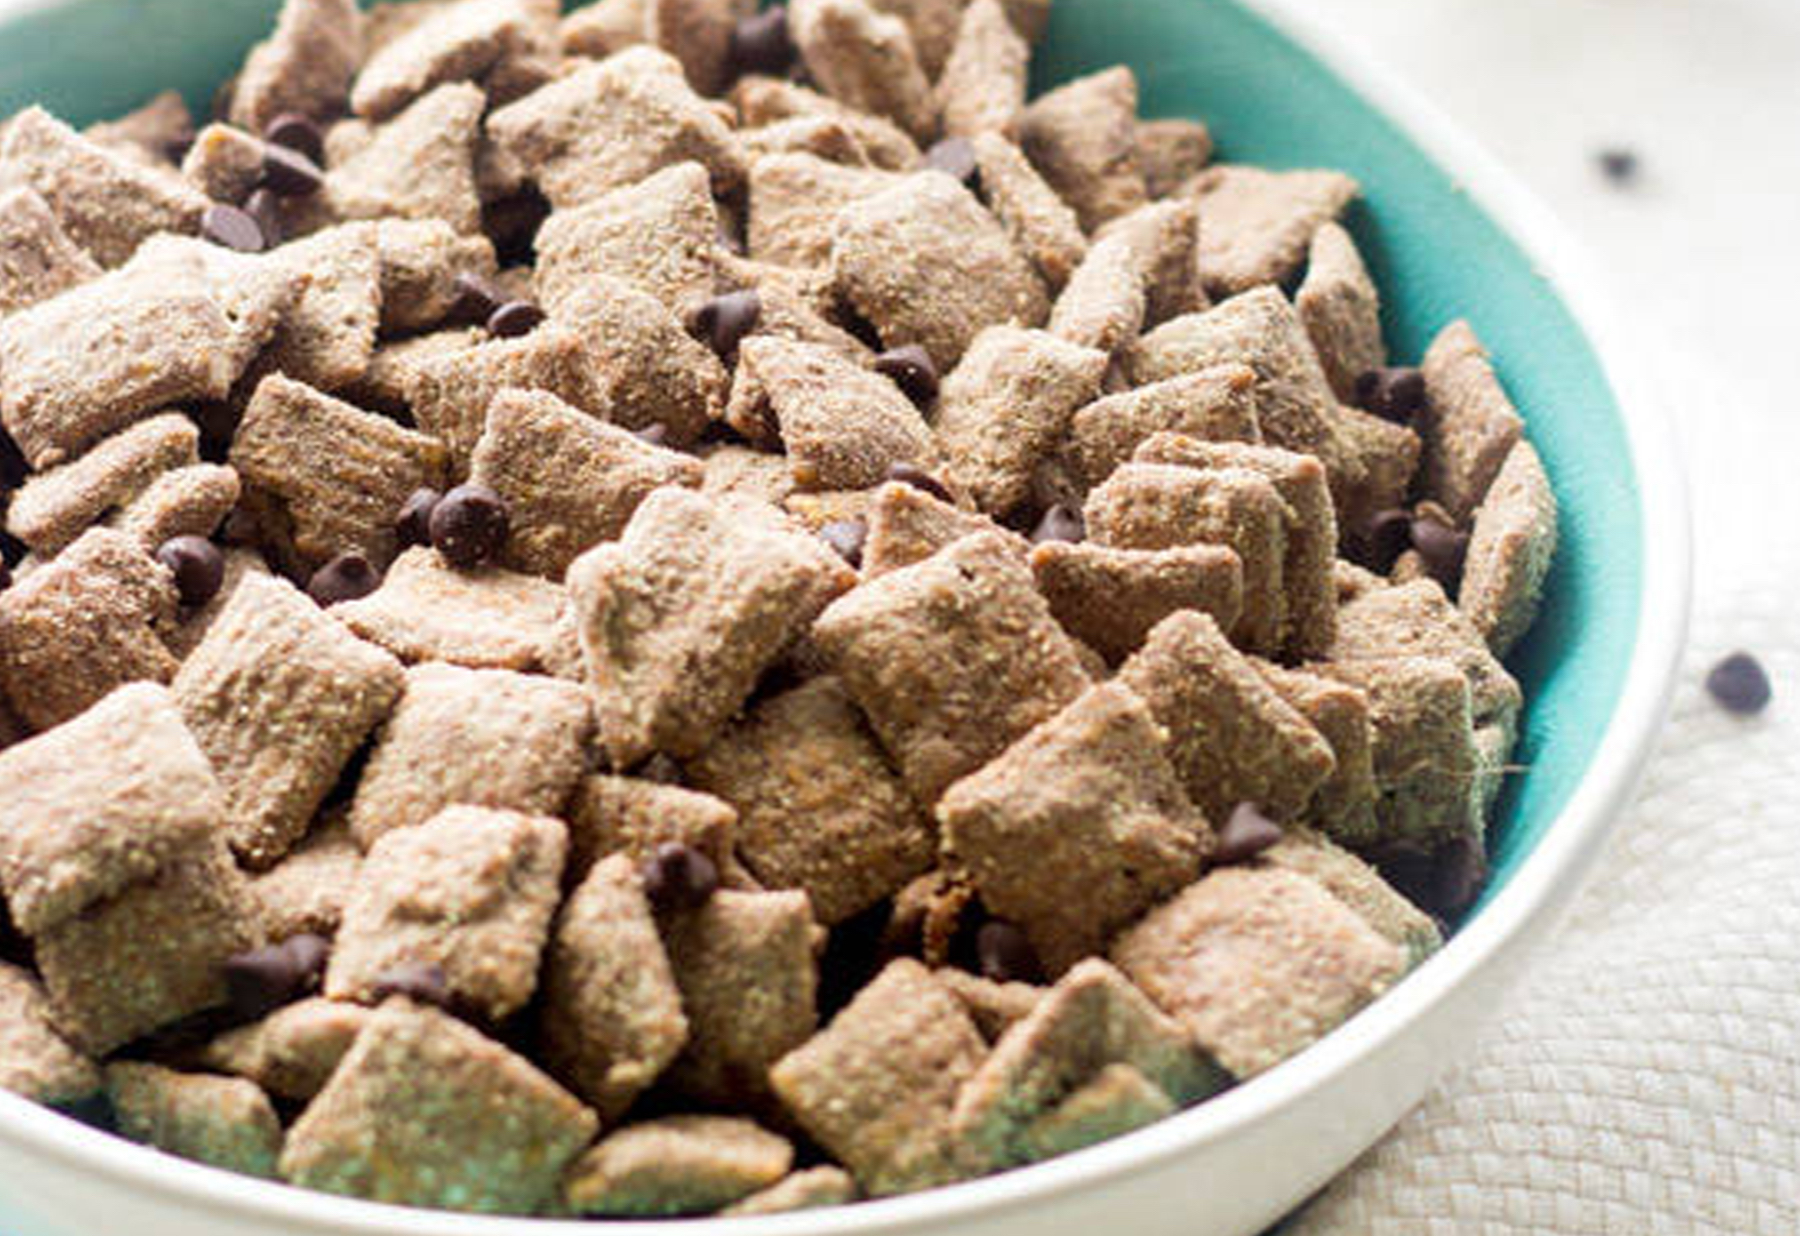 Puppy Chow Recipes: 5 Healthier Versions of Your Favorite Childhood Snack